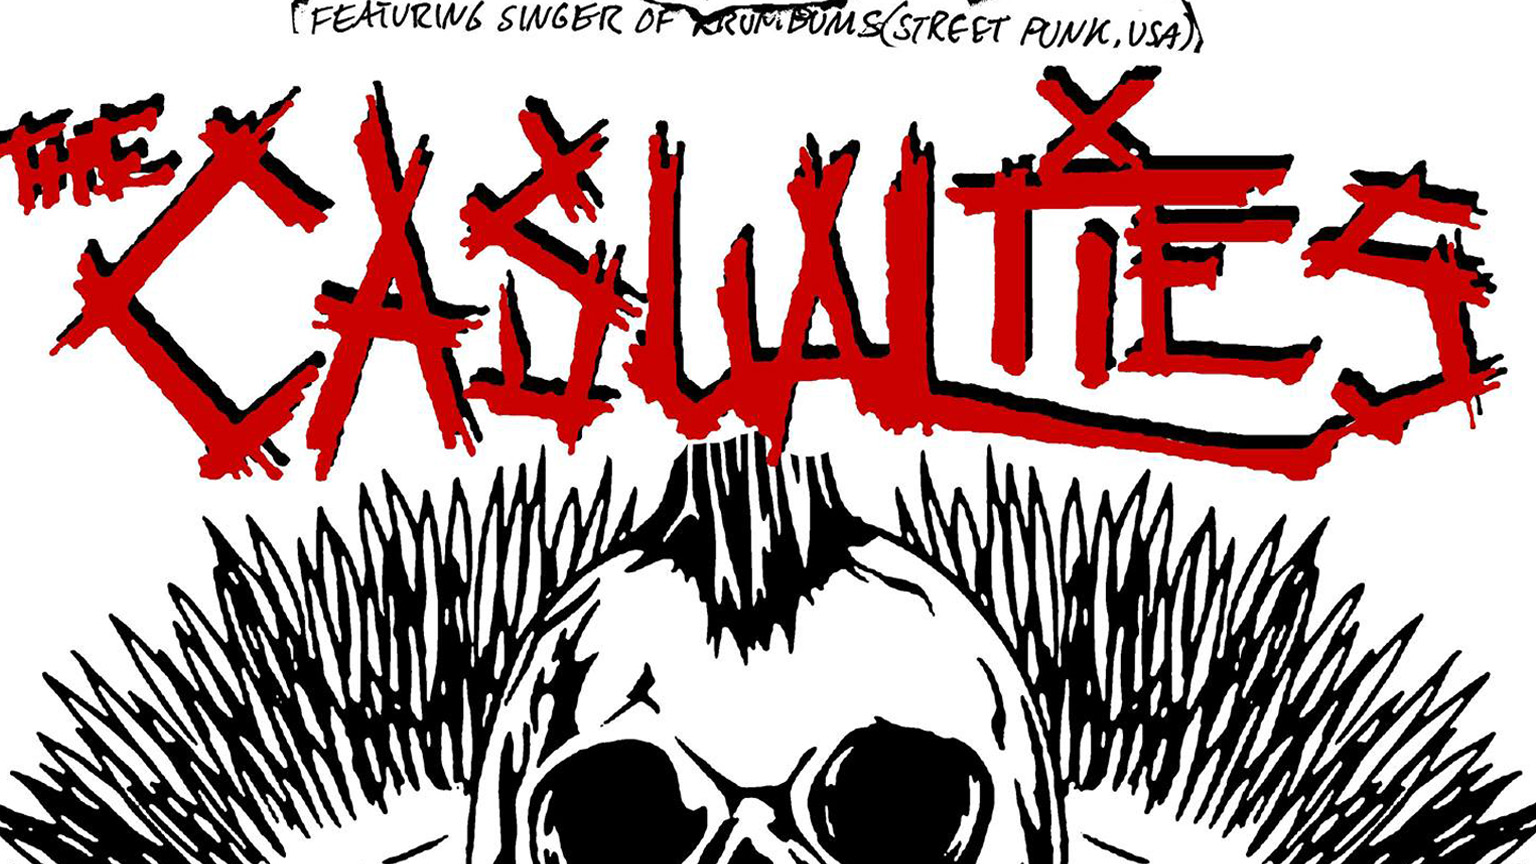 24.01.2019 – The Casualties + Disturbance + Listix + Stateless # Punk-Rock